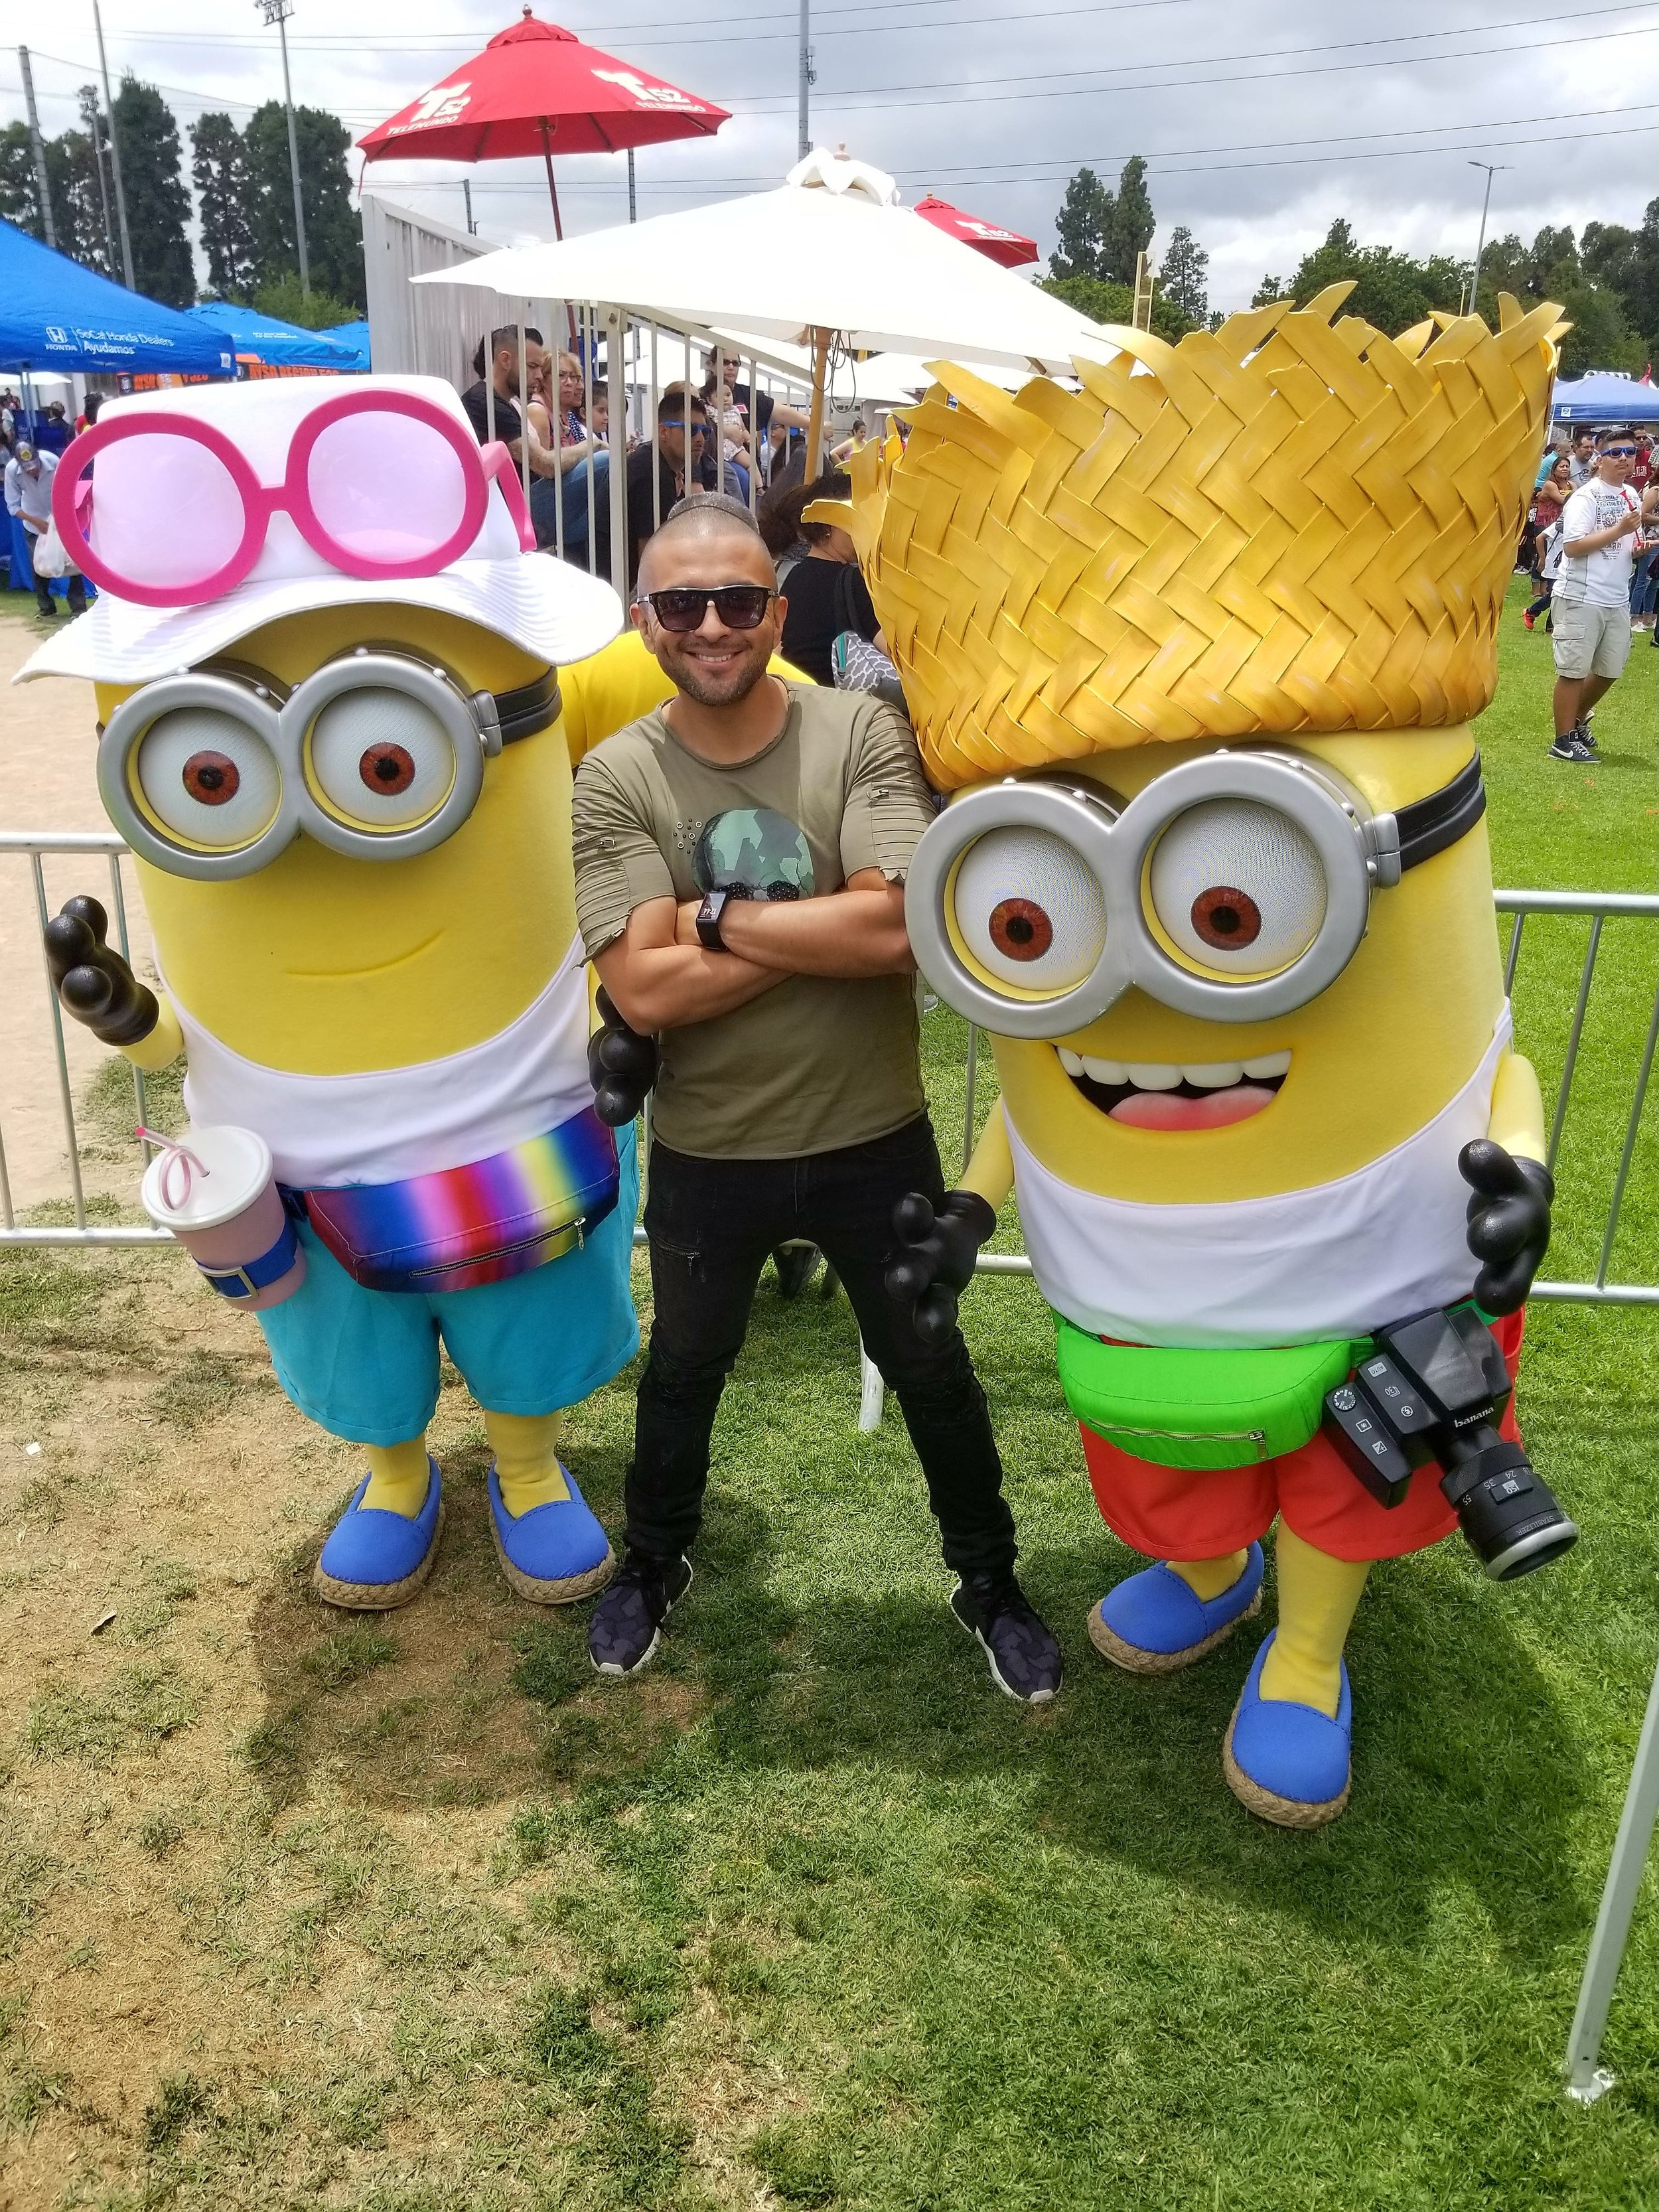 Movie Promotional for the Minions